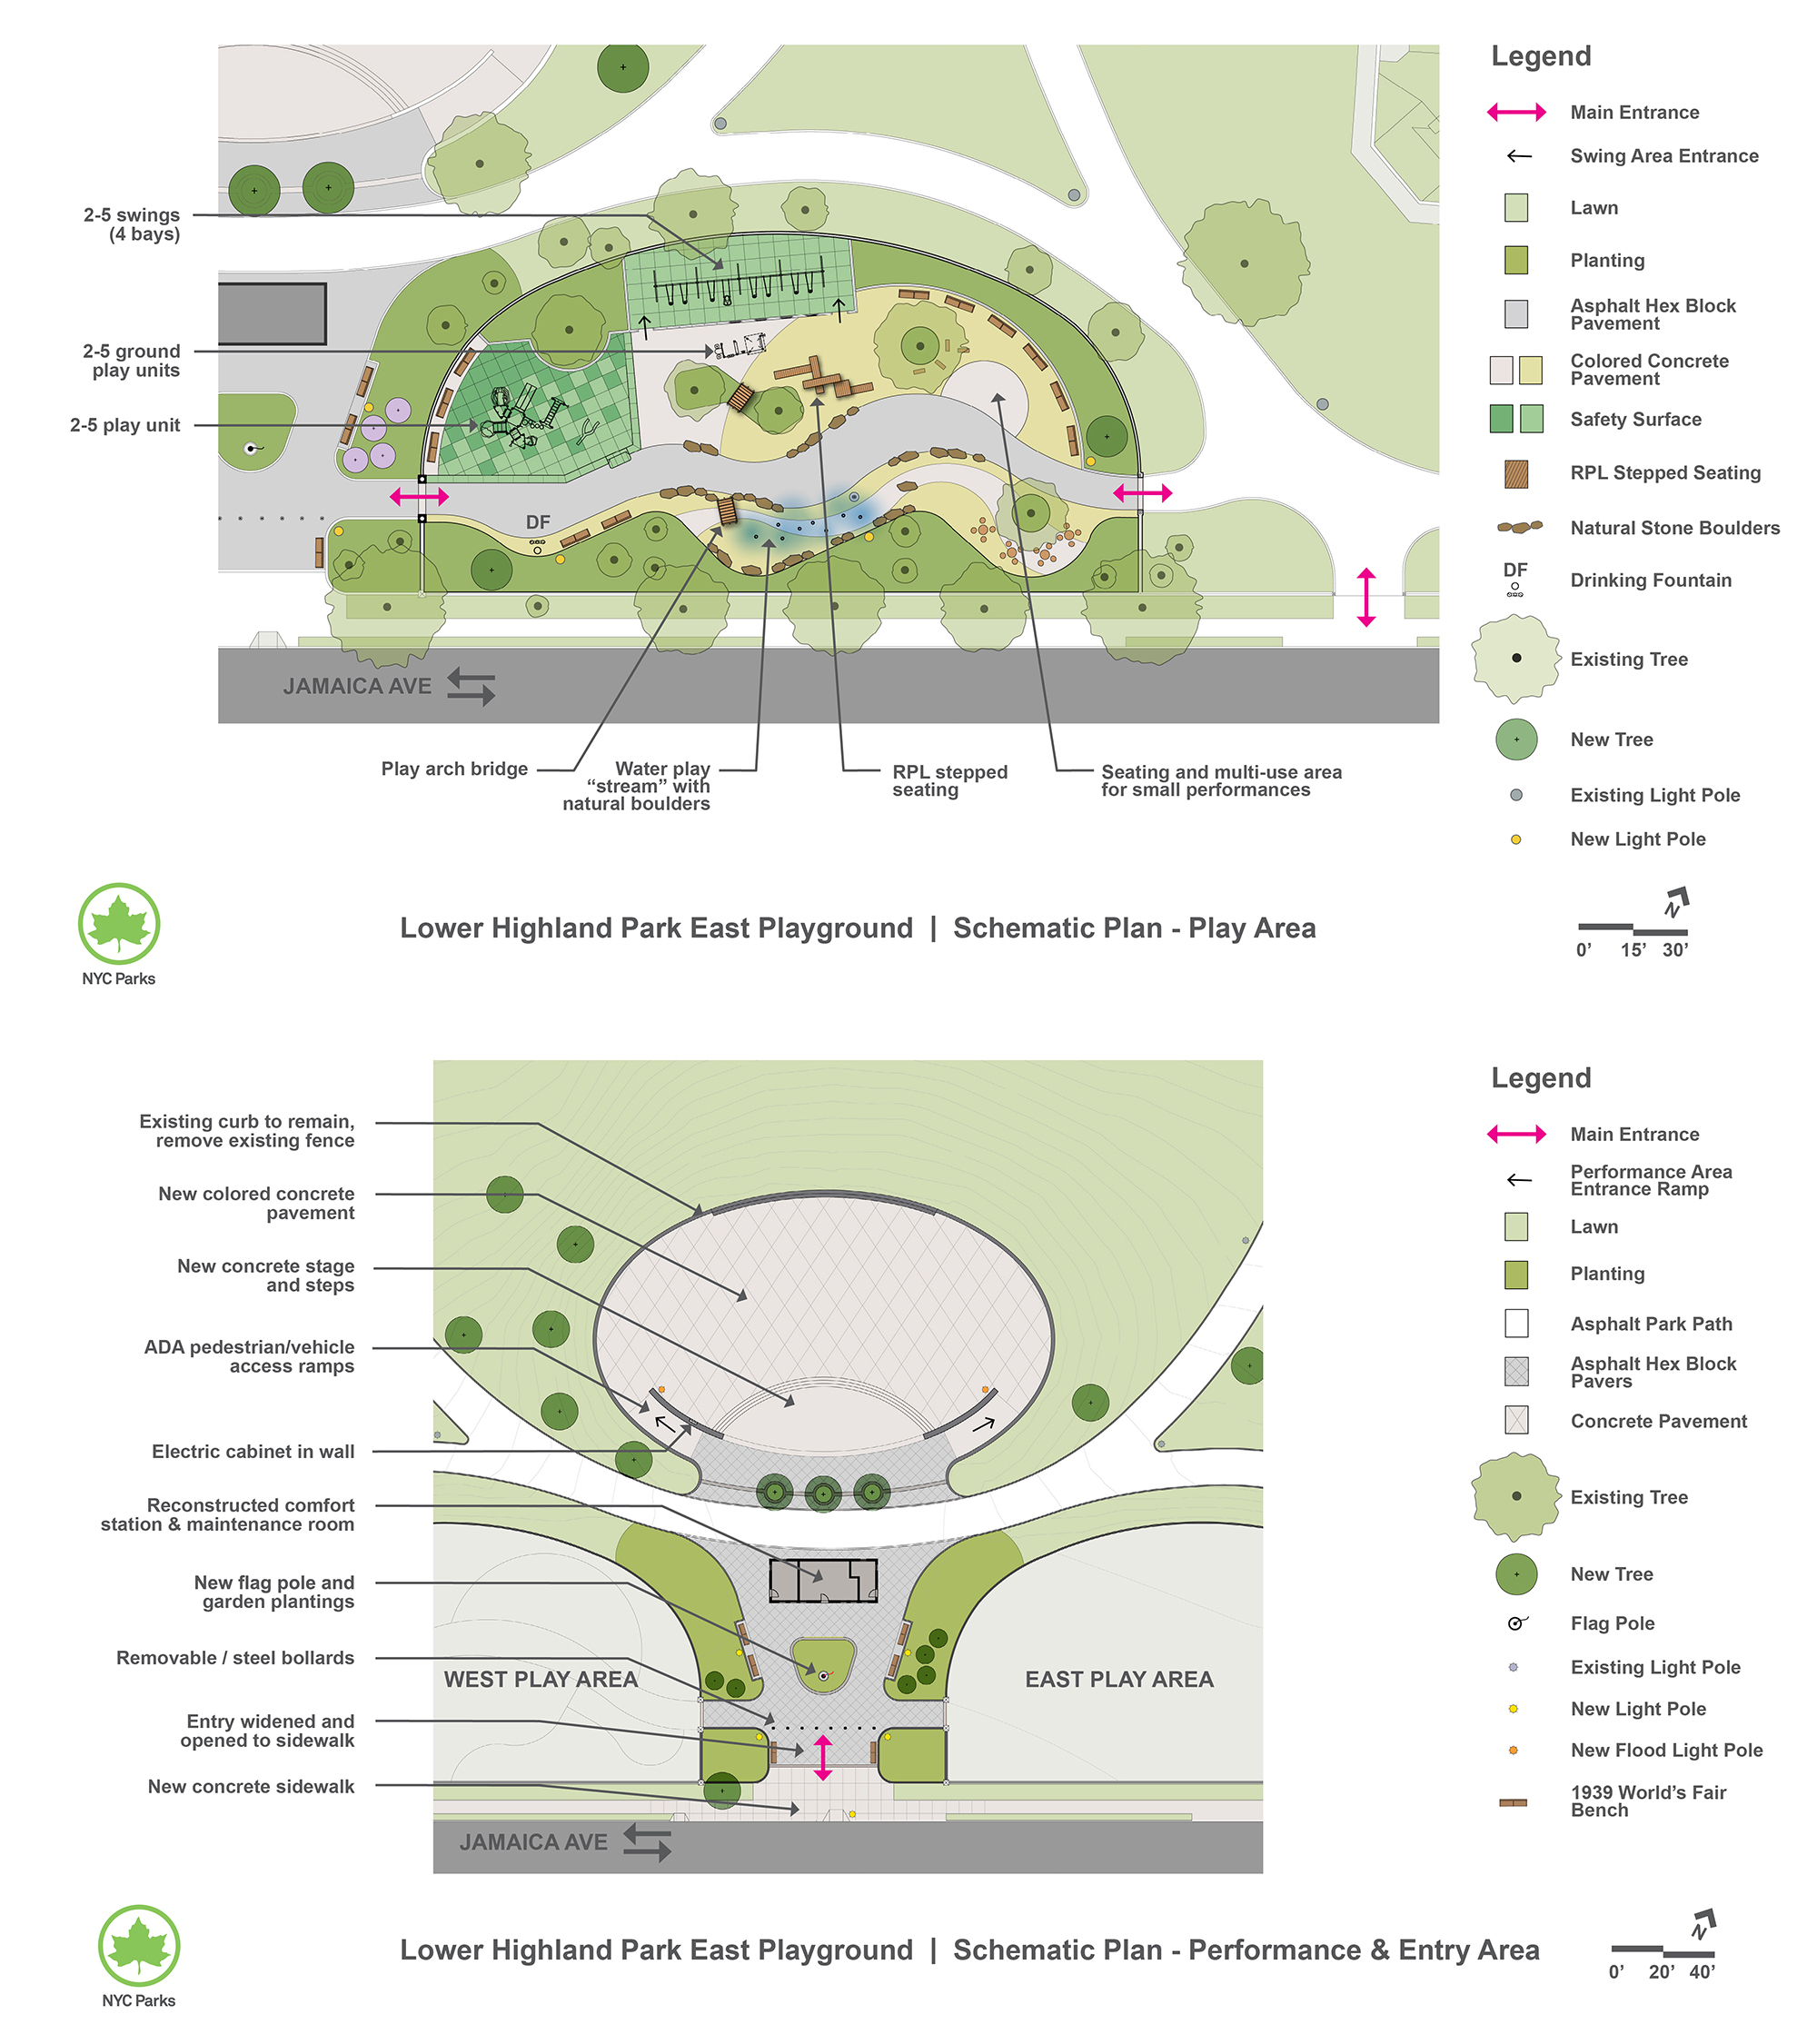 Design of Highland Park Lower East Playground Reconstruction